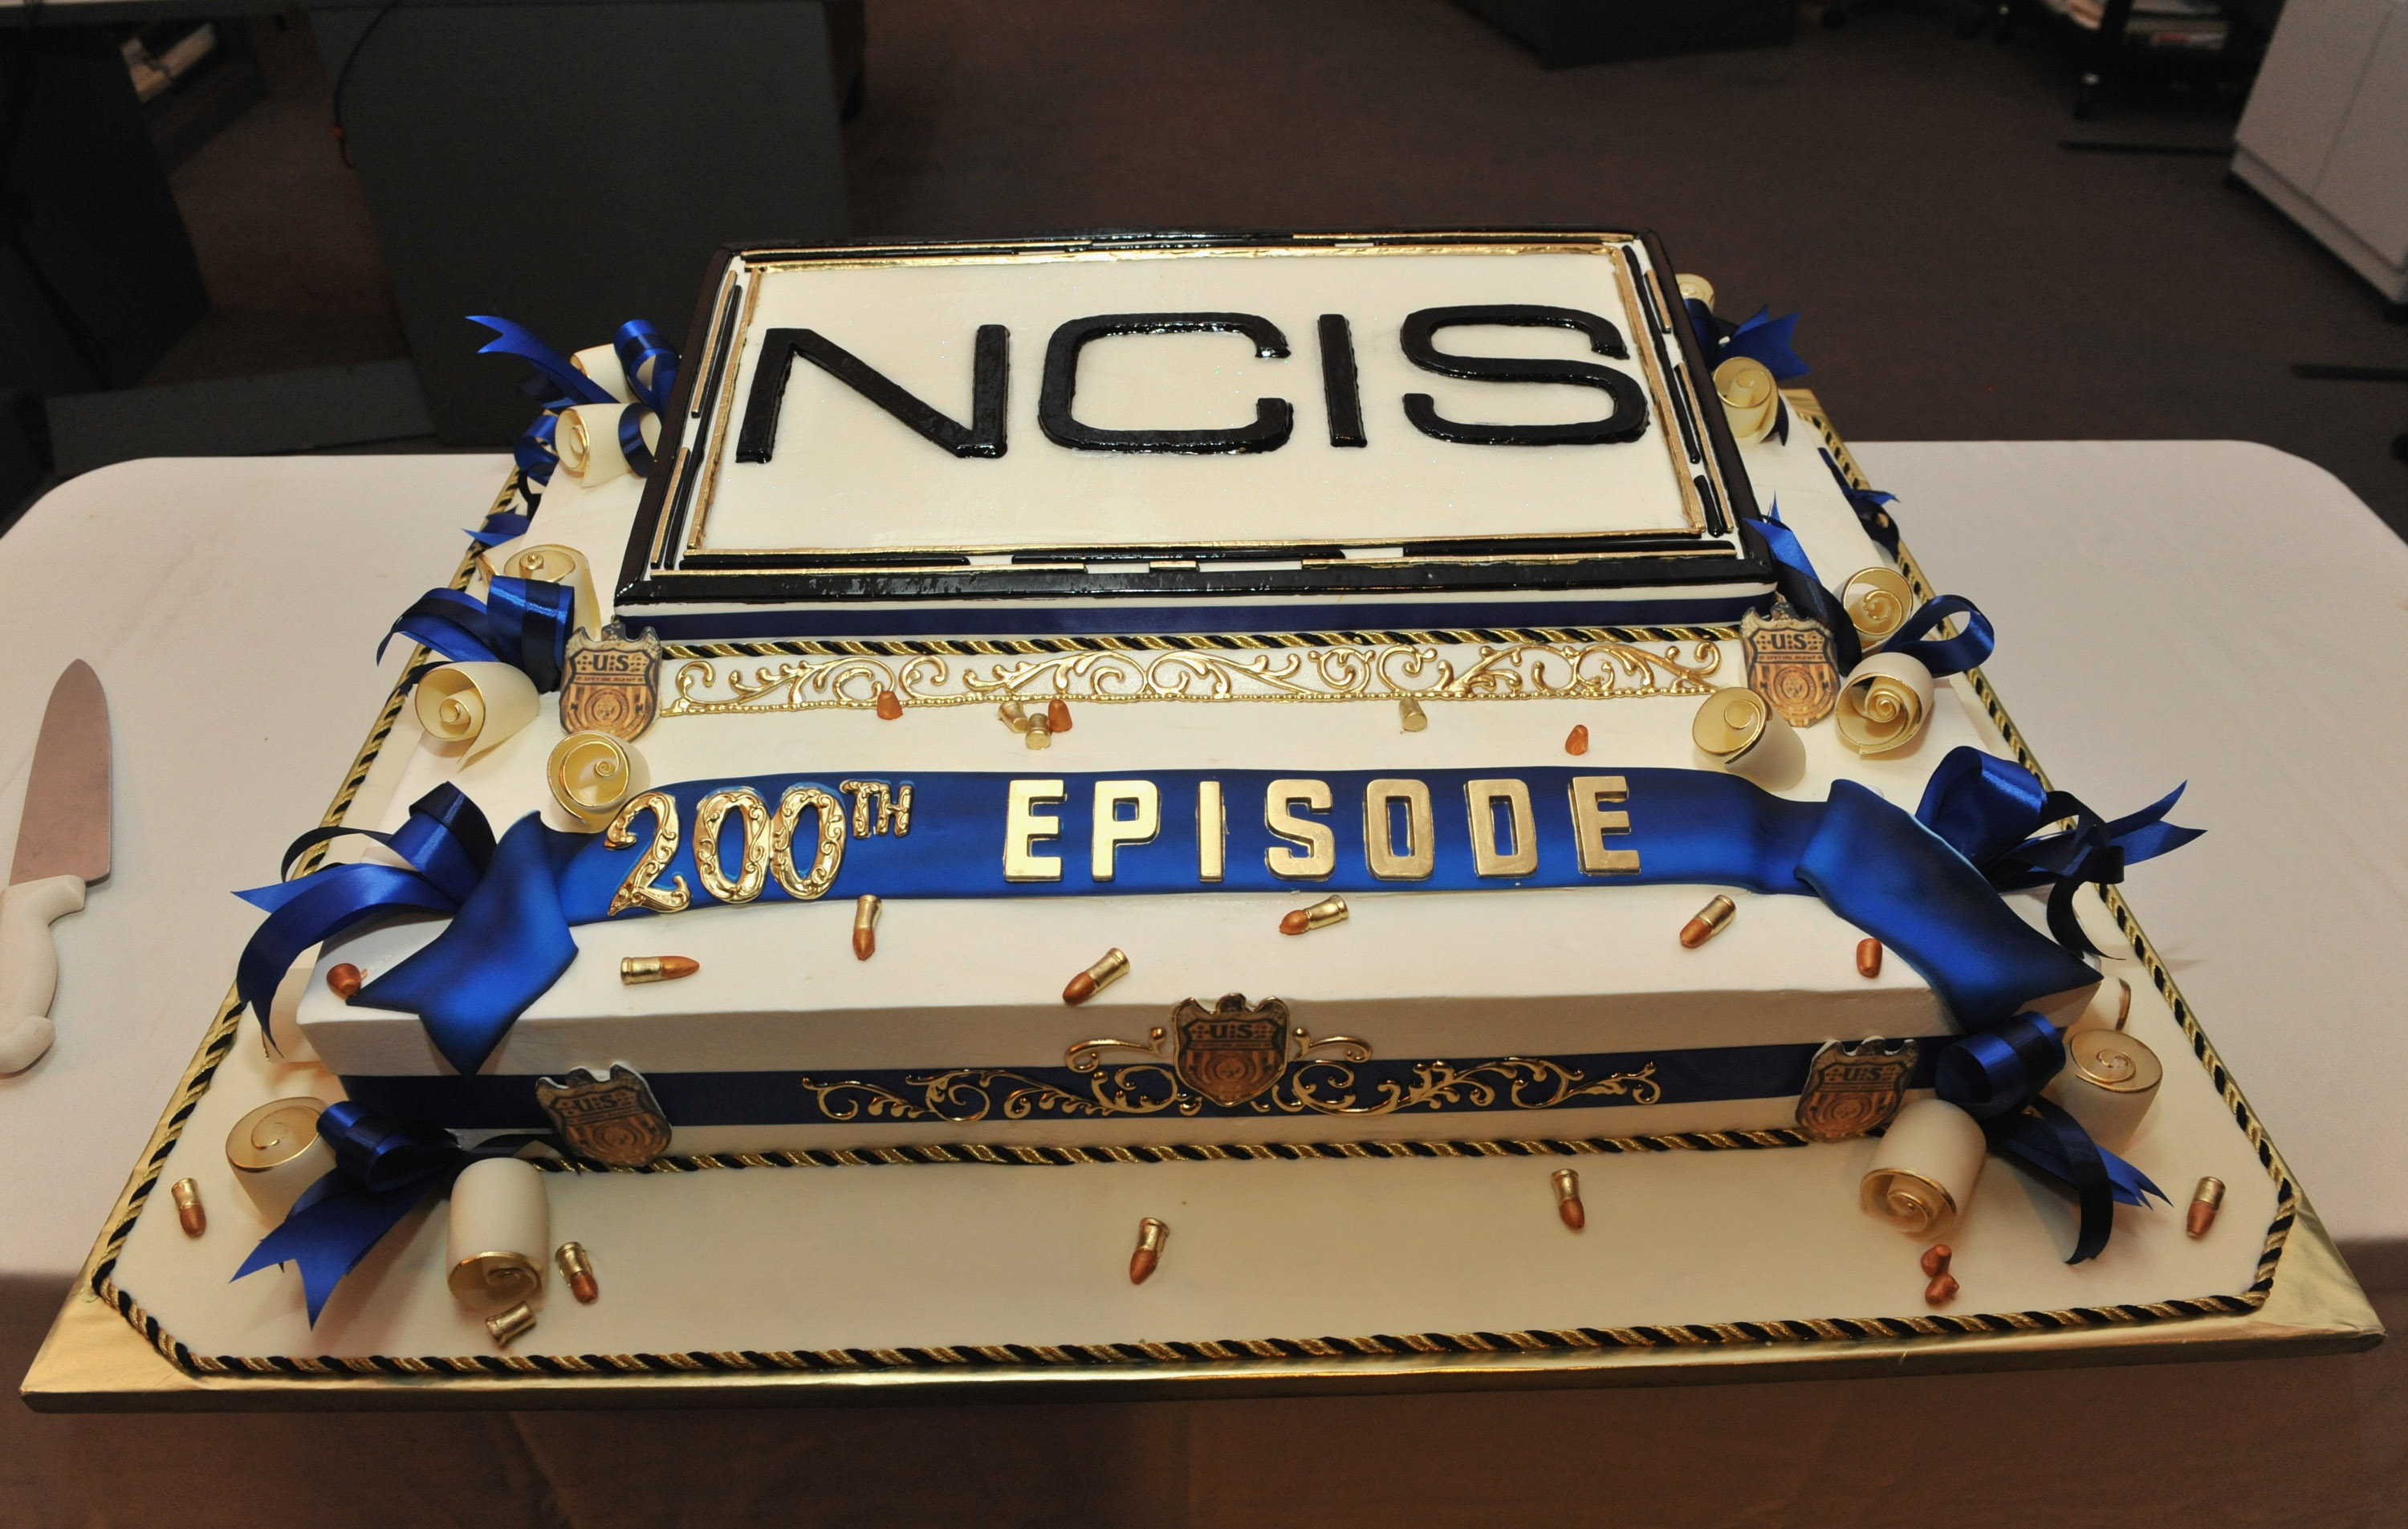 NCIS facts